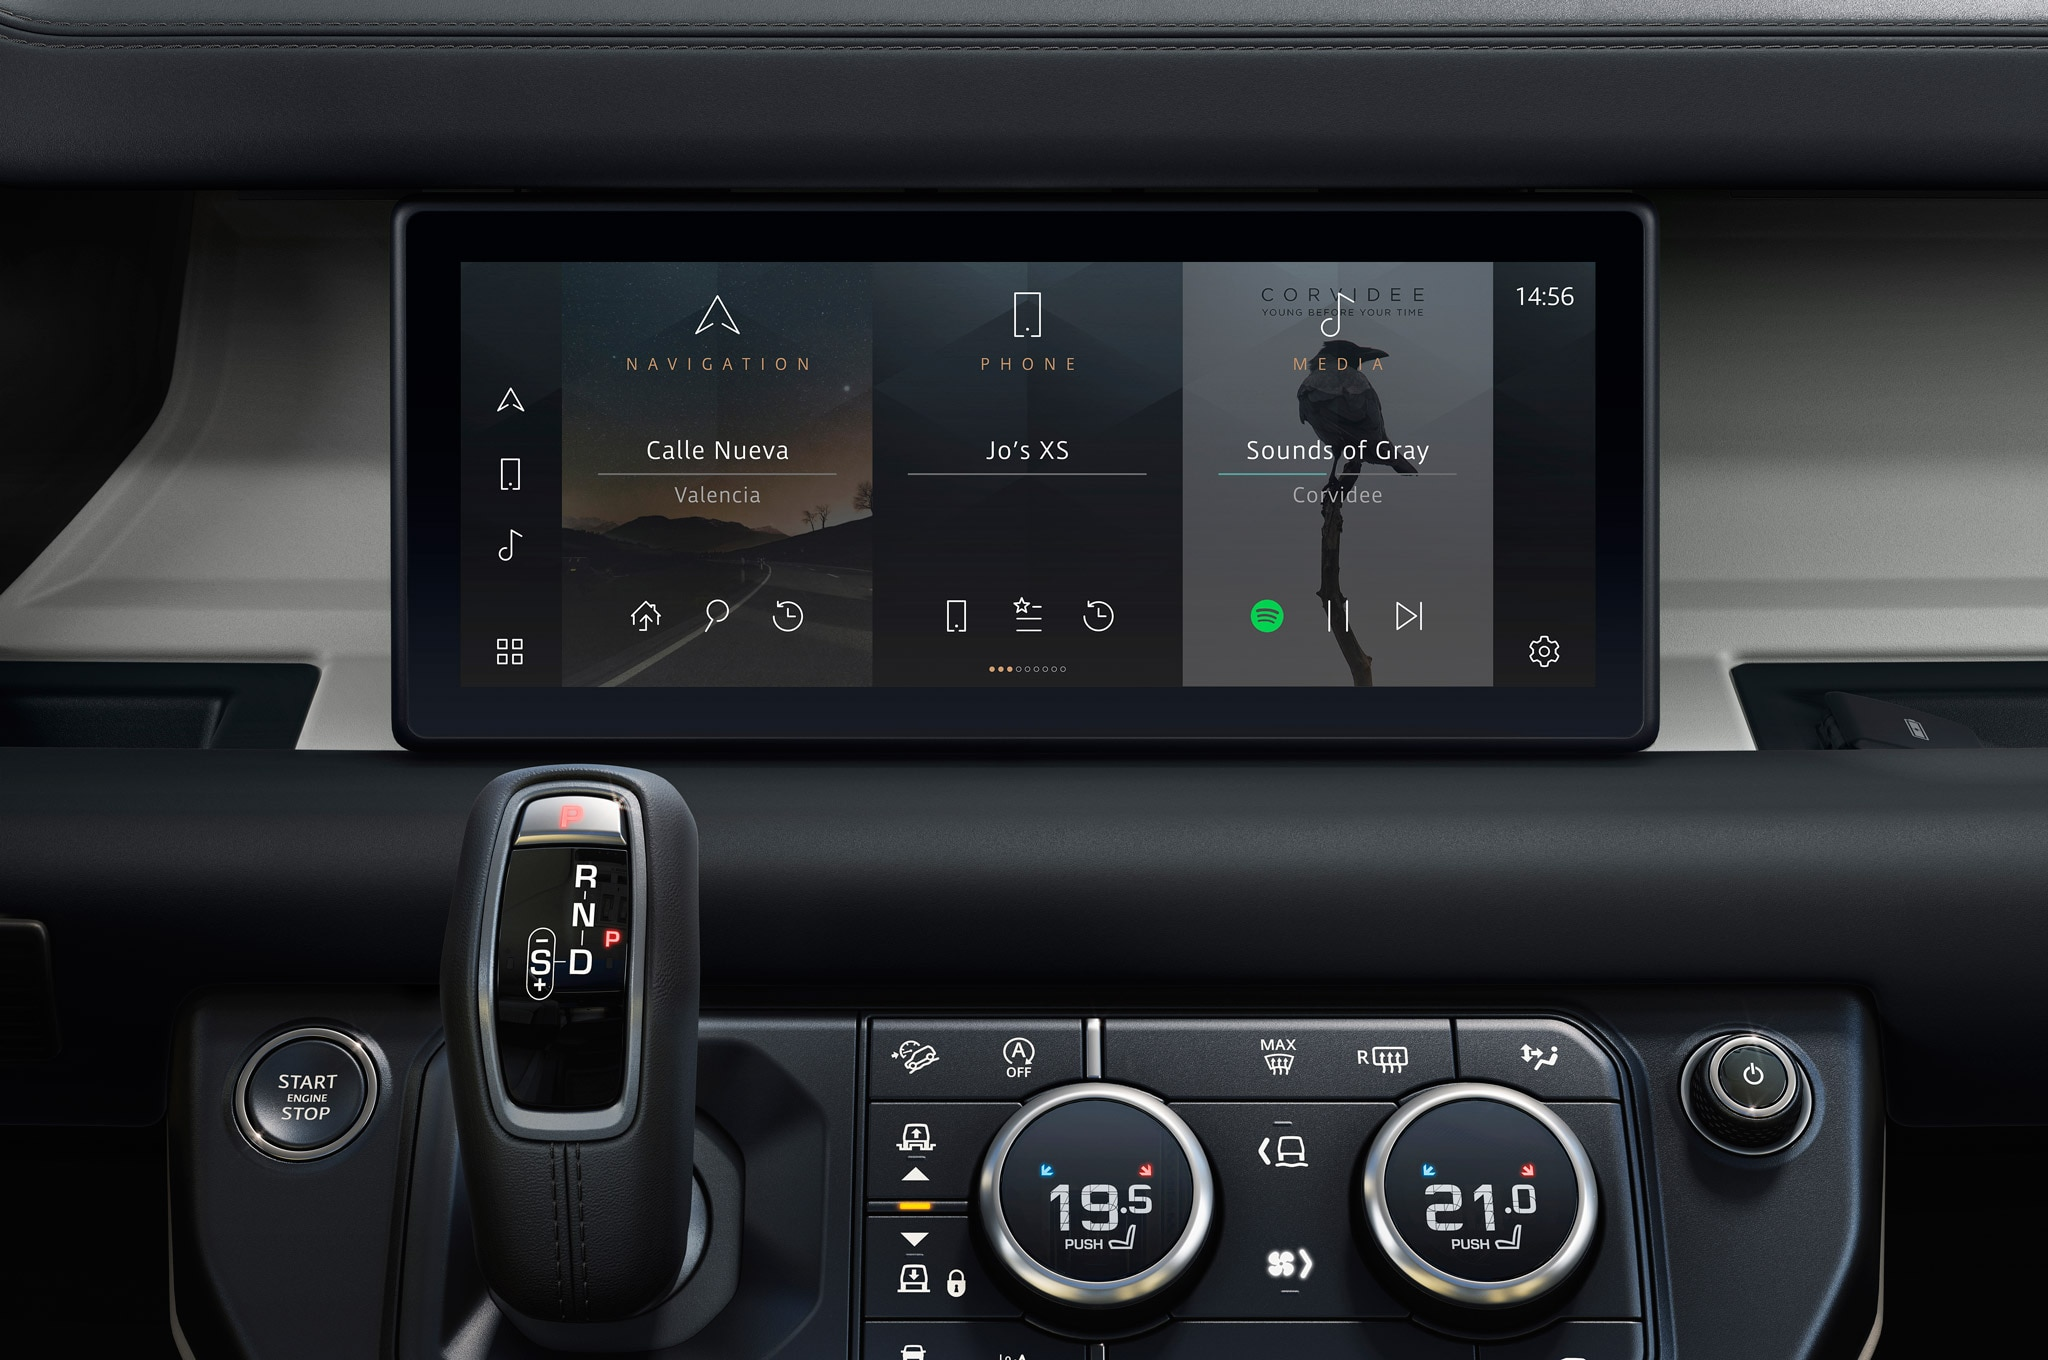 2020 land rover defender 90 interior infotainment 01